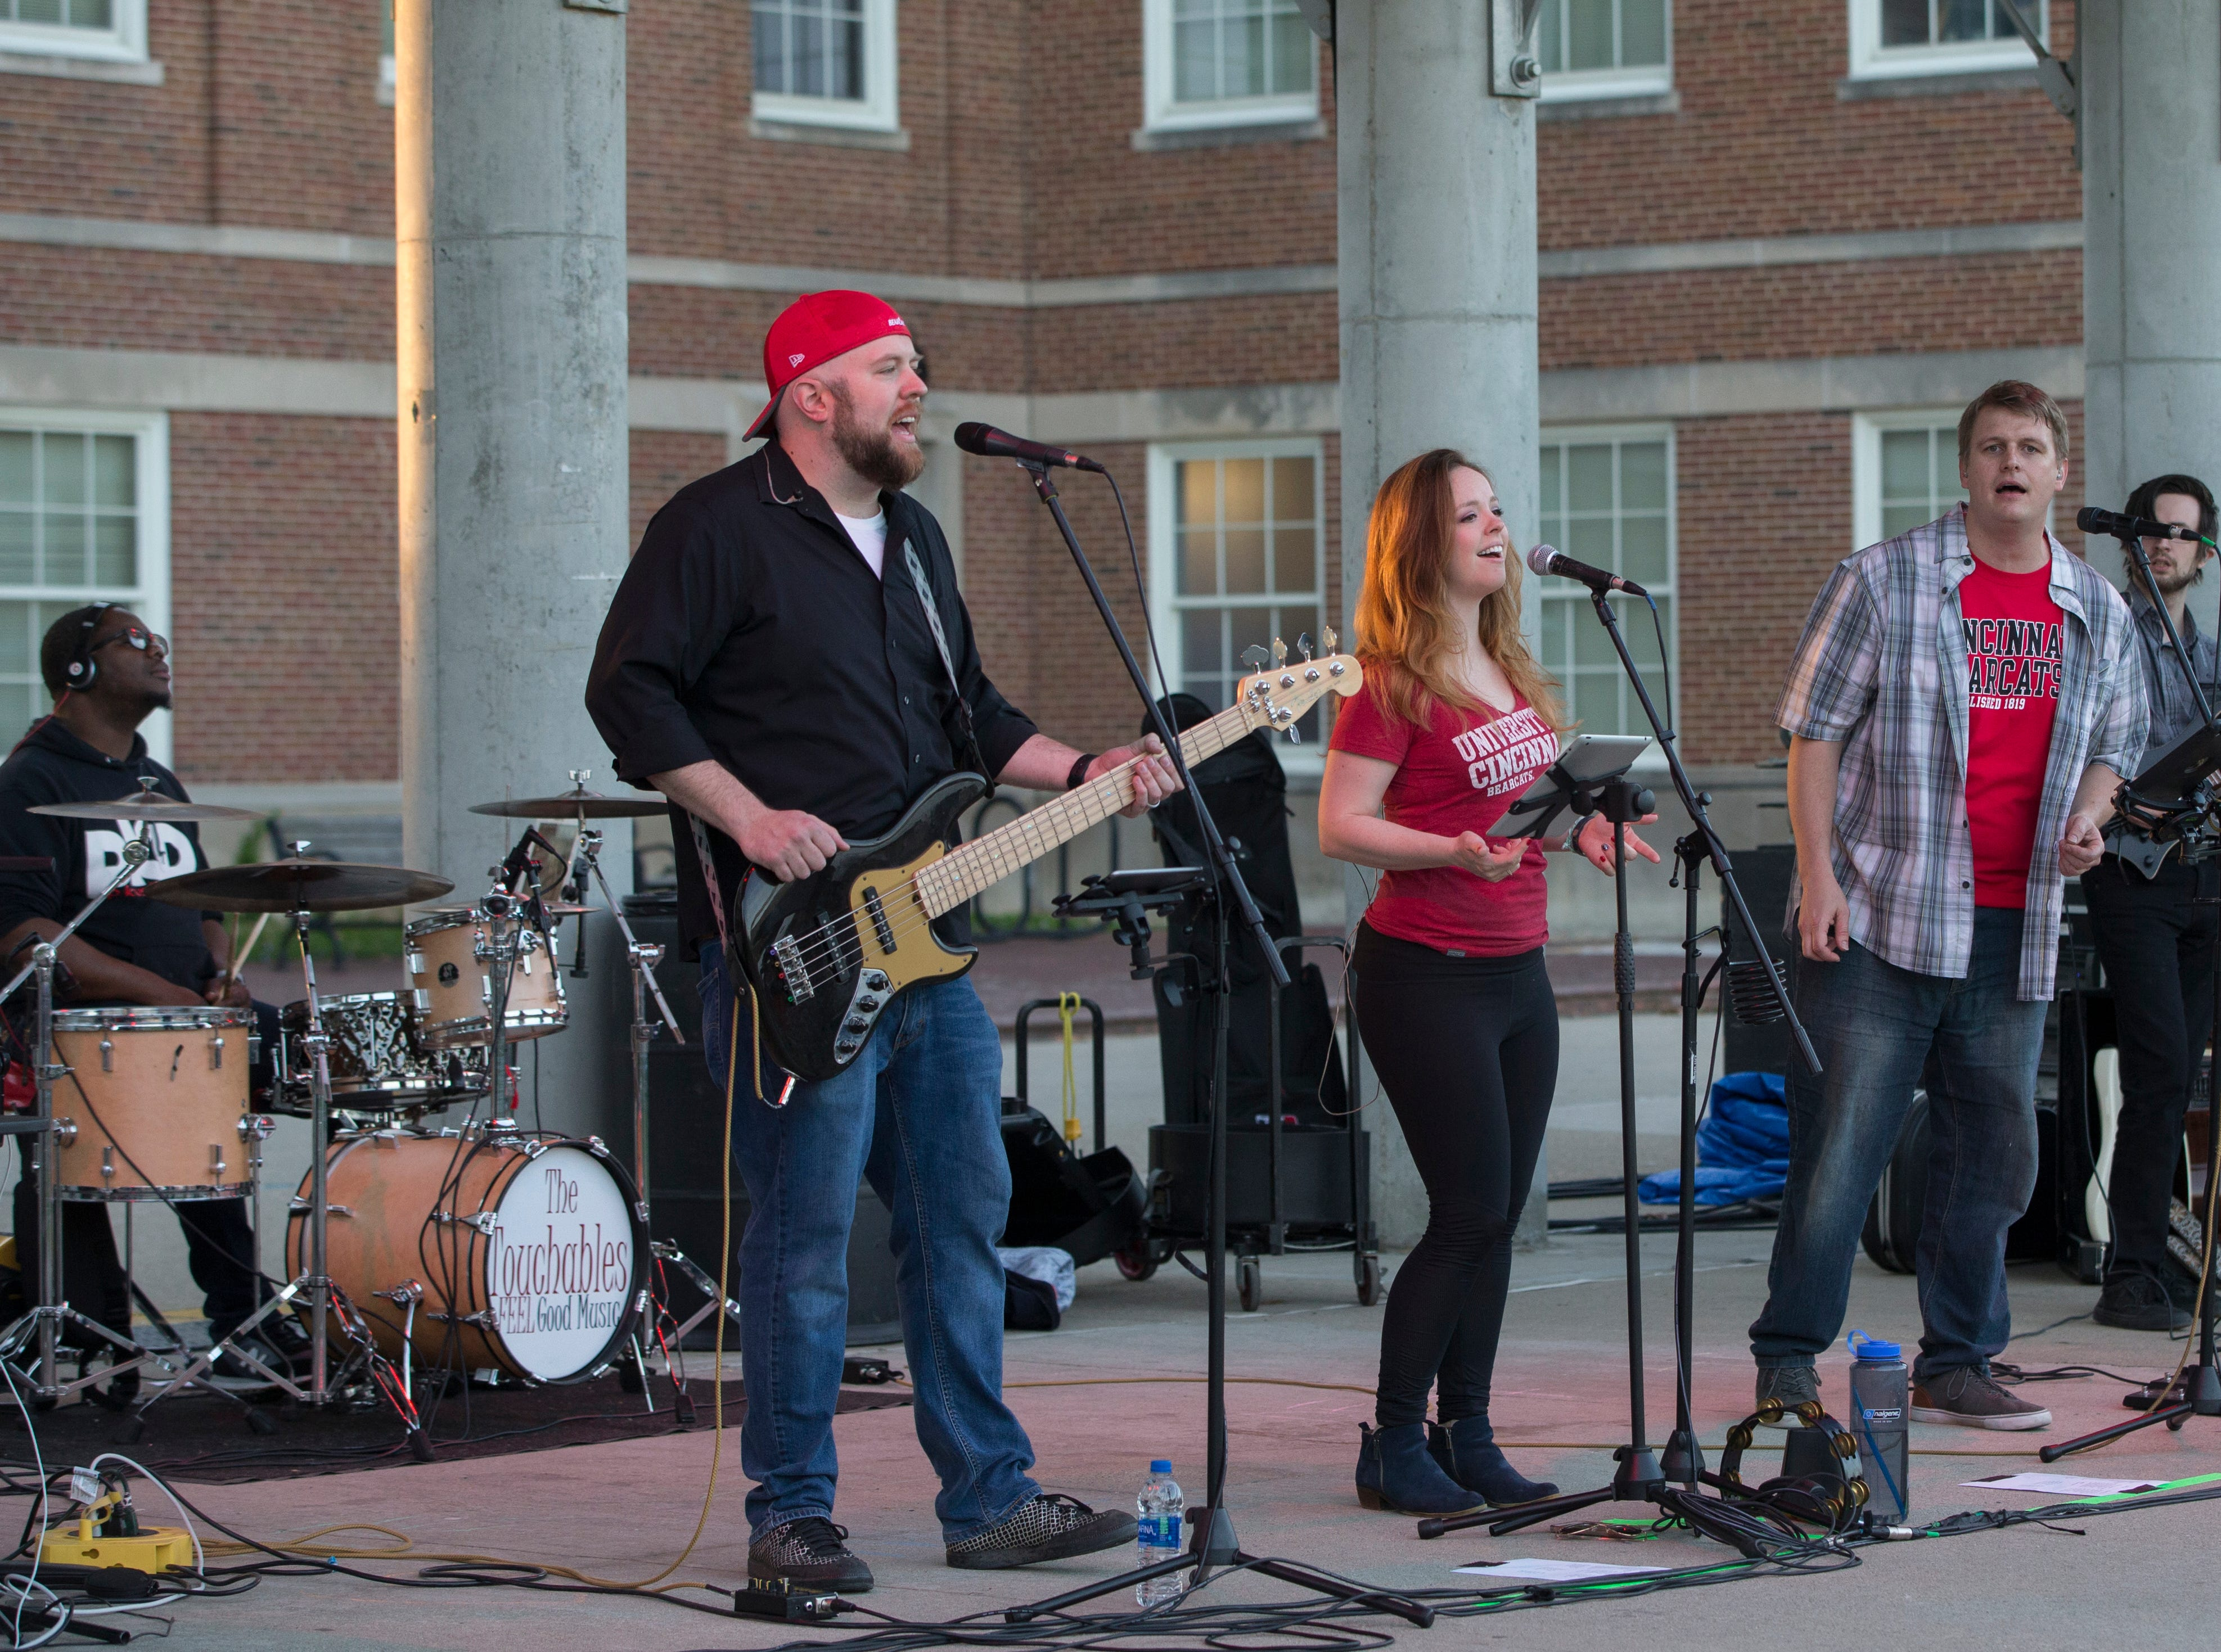 Local band The Touchables performed for the crowd during Community Day to celebrate UC's Bicentennial Saturday April 6, 2019. University of Cincinnati/Joseph Fuqua II